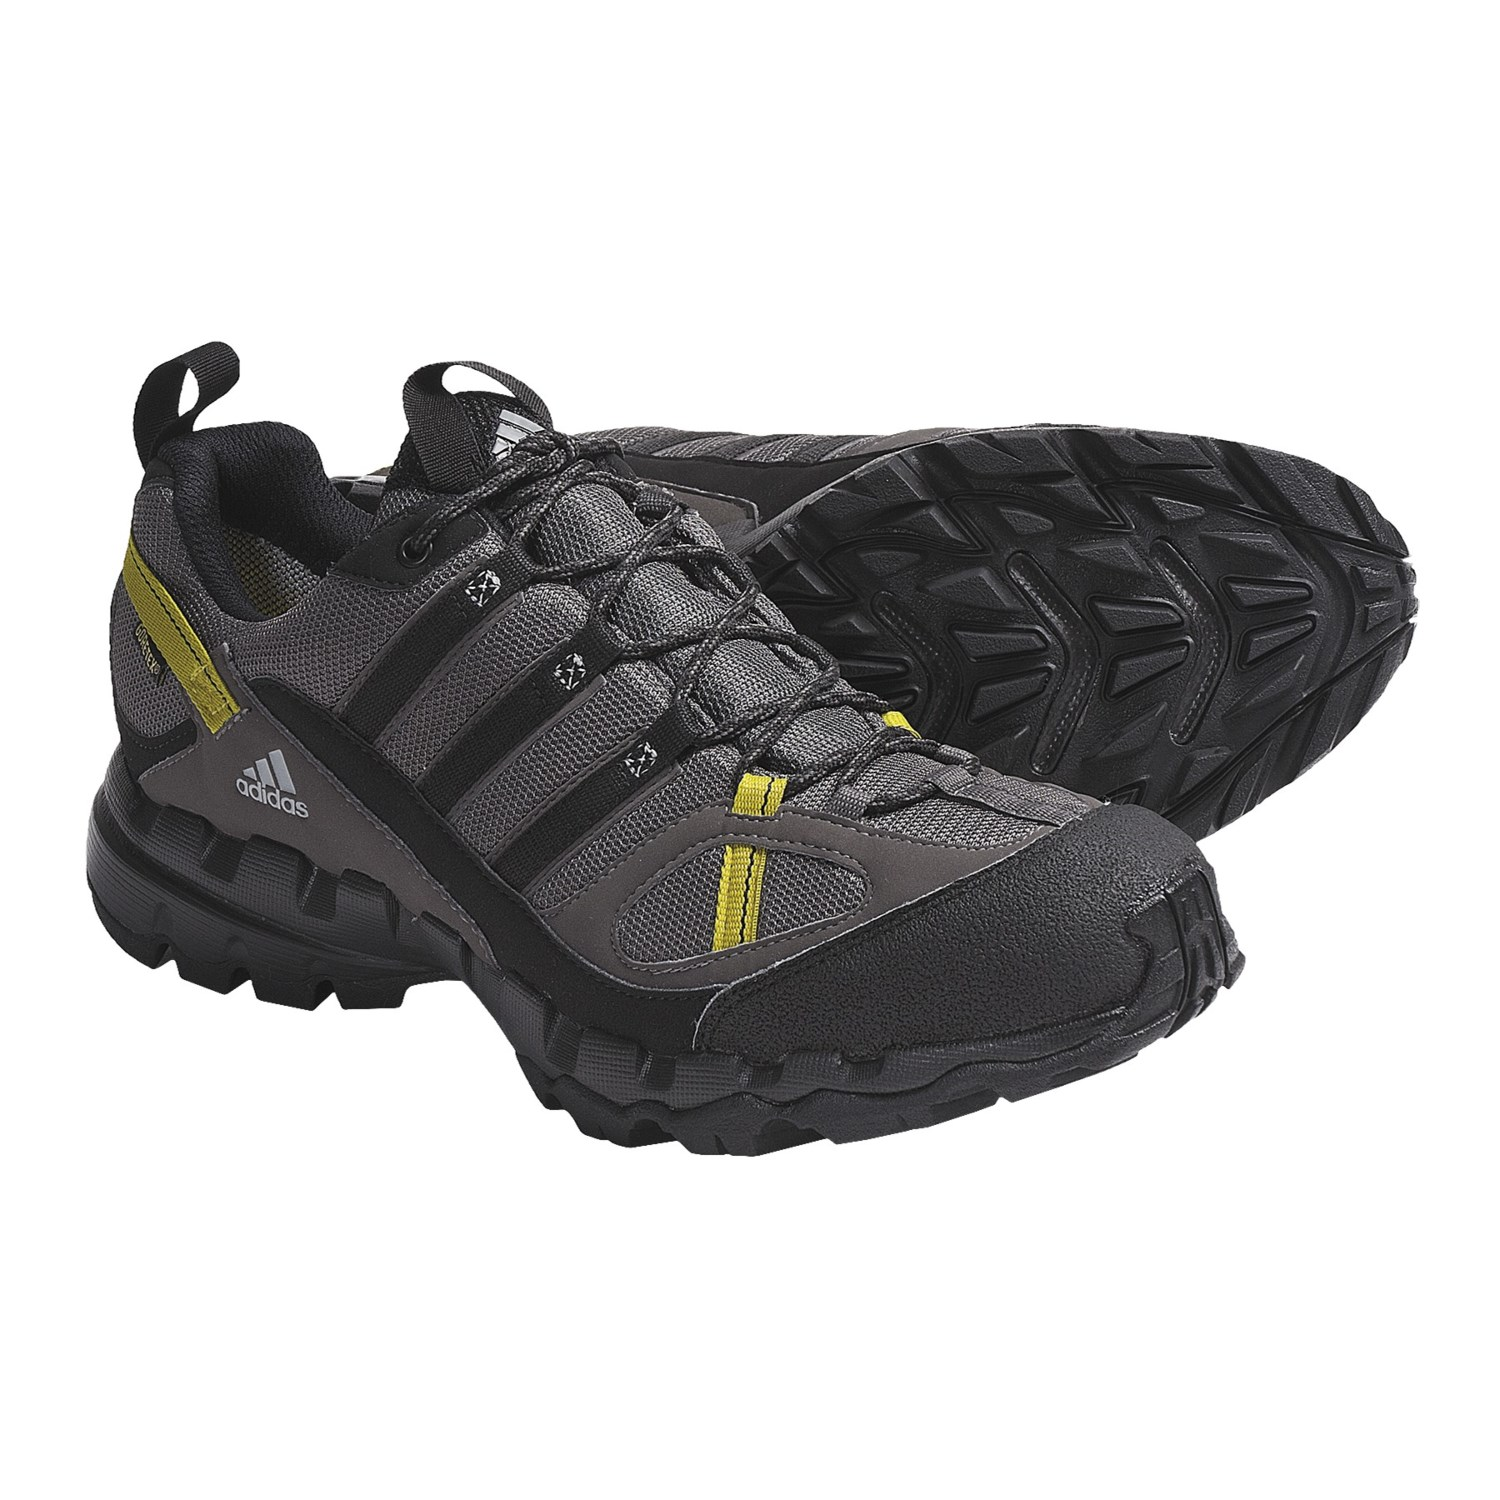 release date a896d 54dba Adidas Outdoor AX 1 Gore Tex® Trail Shoes (For Men) 4623Y 30